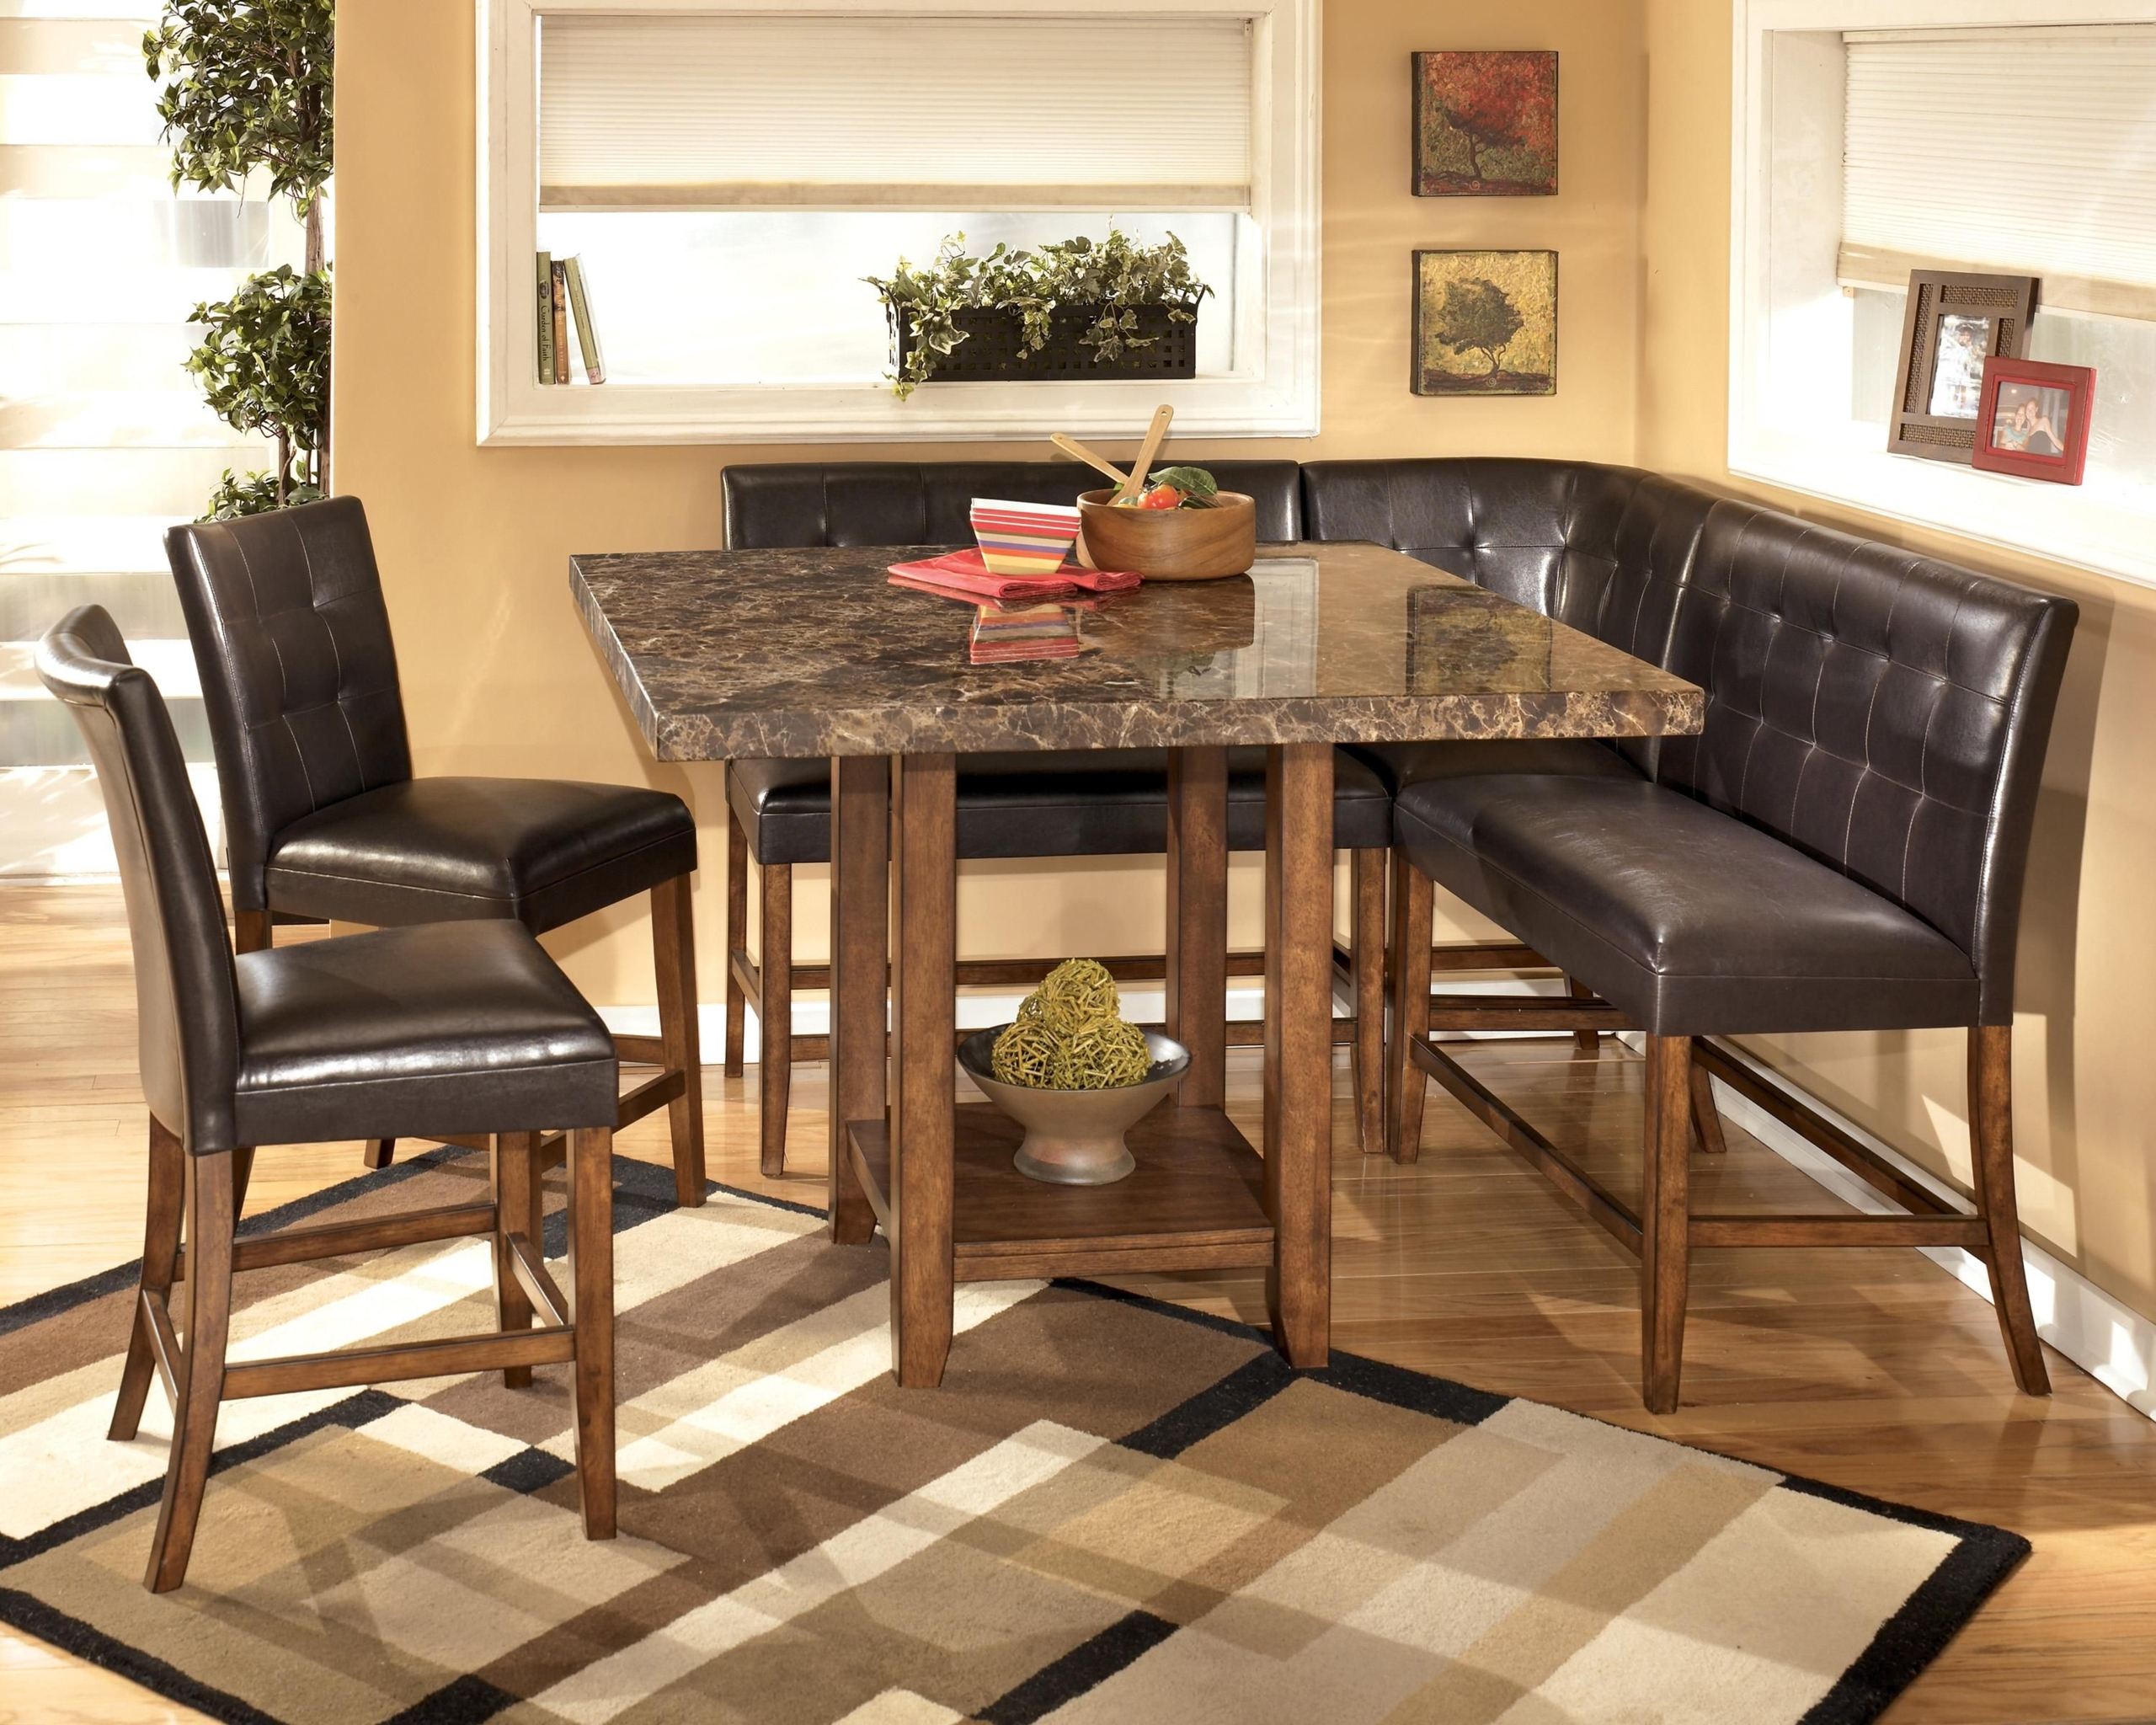 Faux marble top dining table set  sc 1 st  Foter & Faux Marble Dining Table Set - Foter